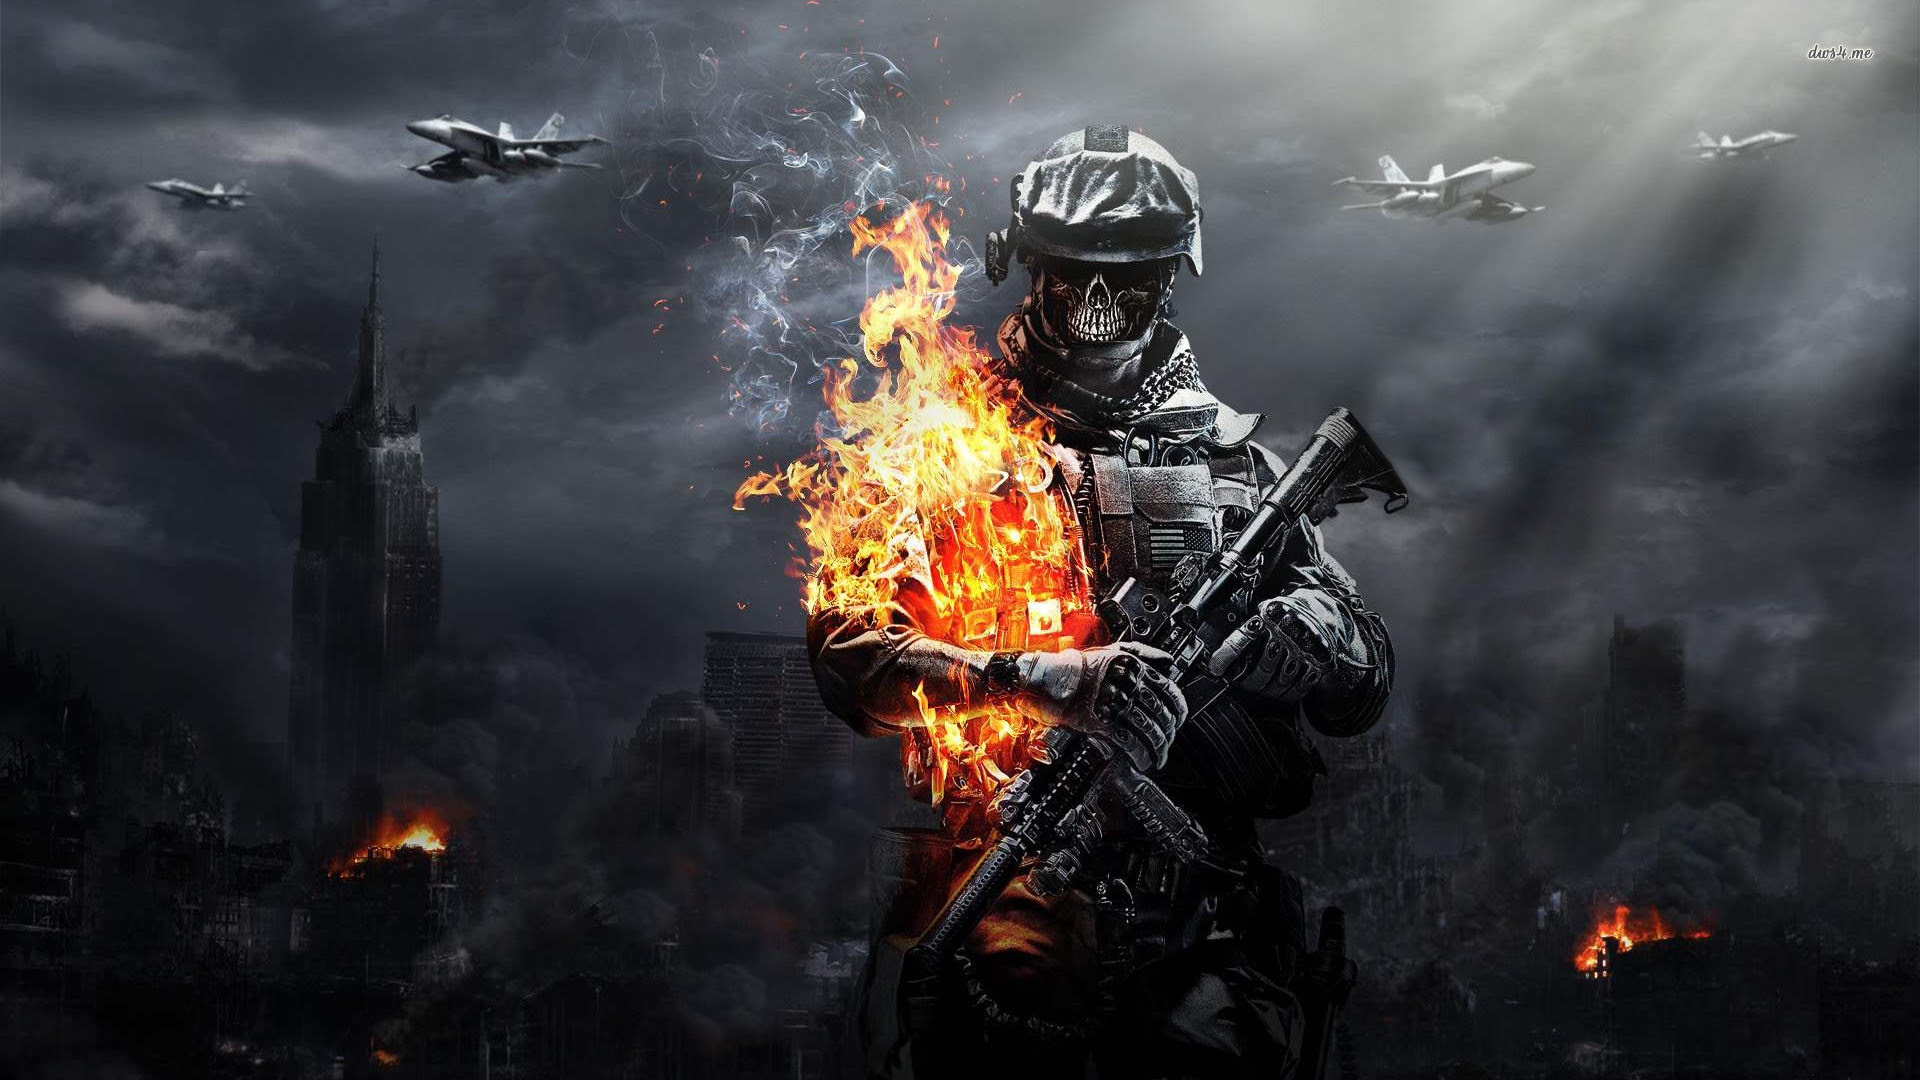 1920x1080 HD Wallpapers Battlefield 4 80+ images